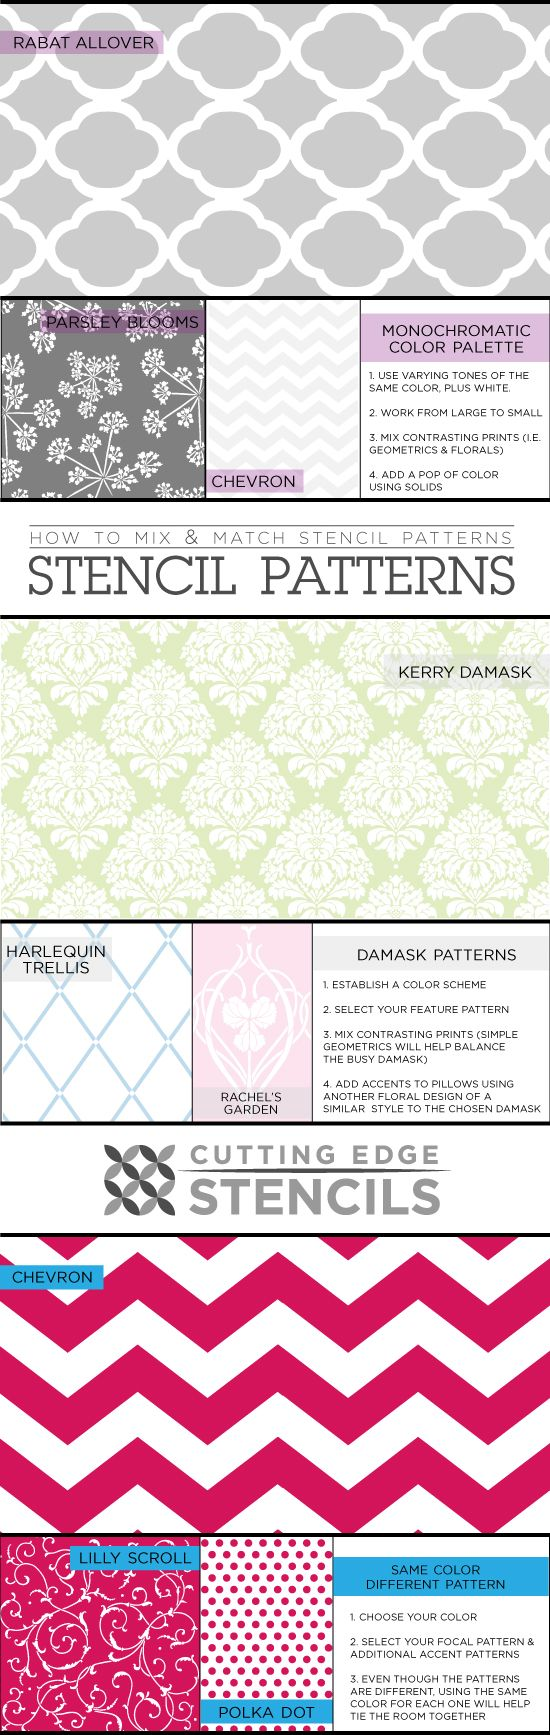 #Stencilidea: Inspiration Boards for mixing #CEStencils patterns